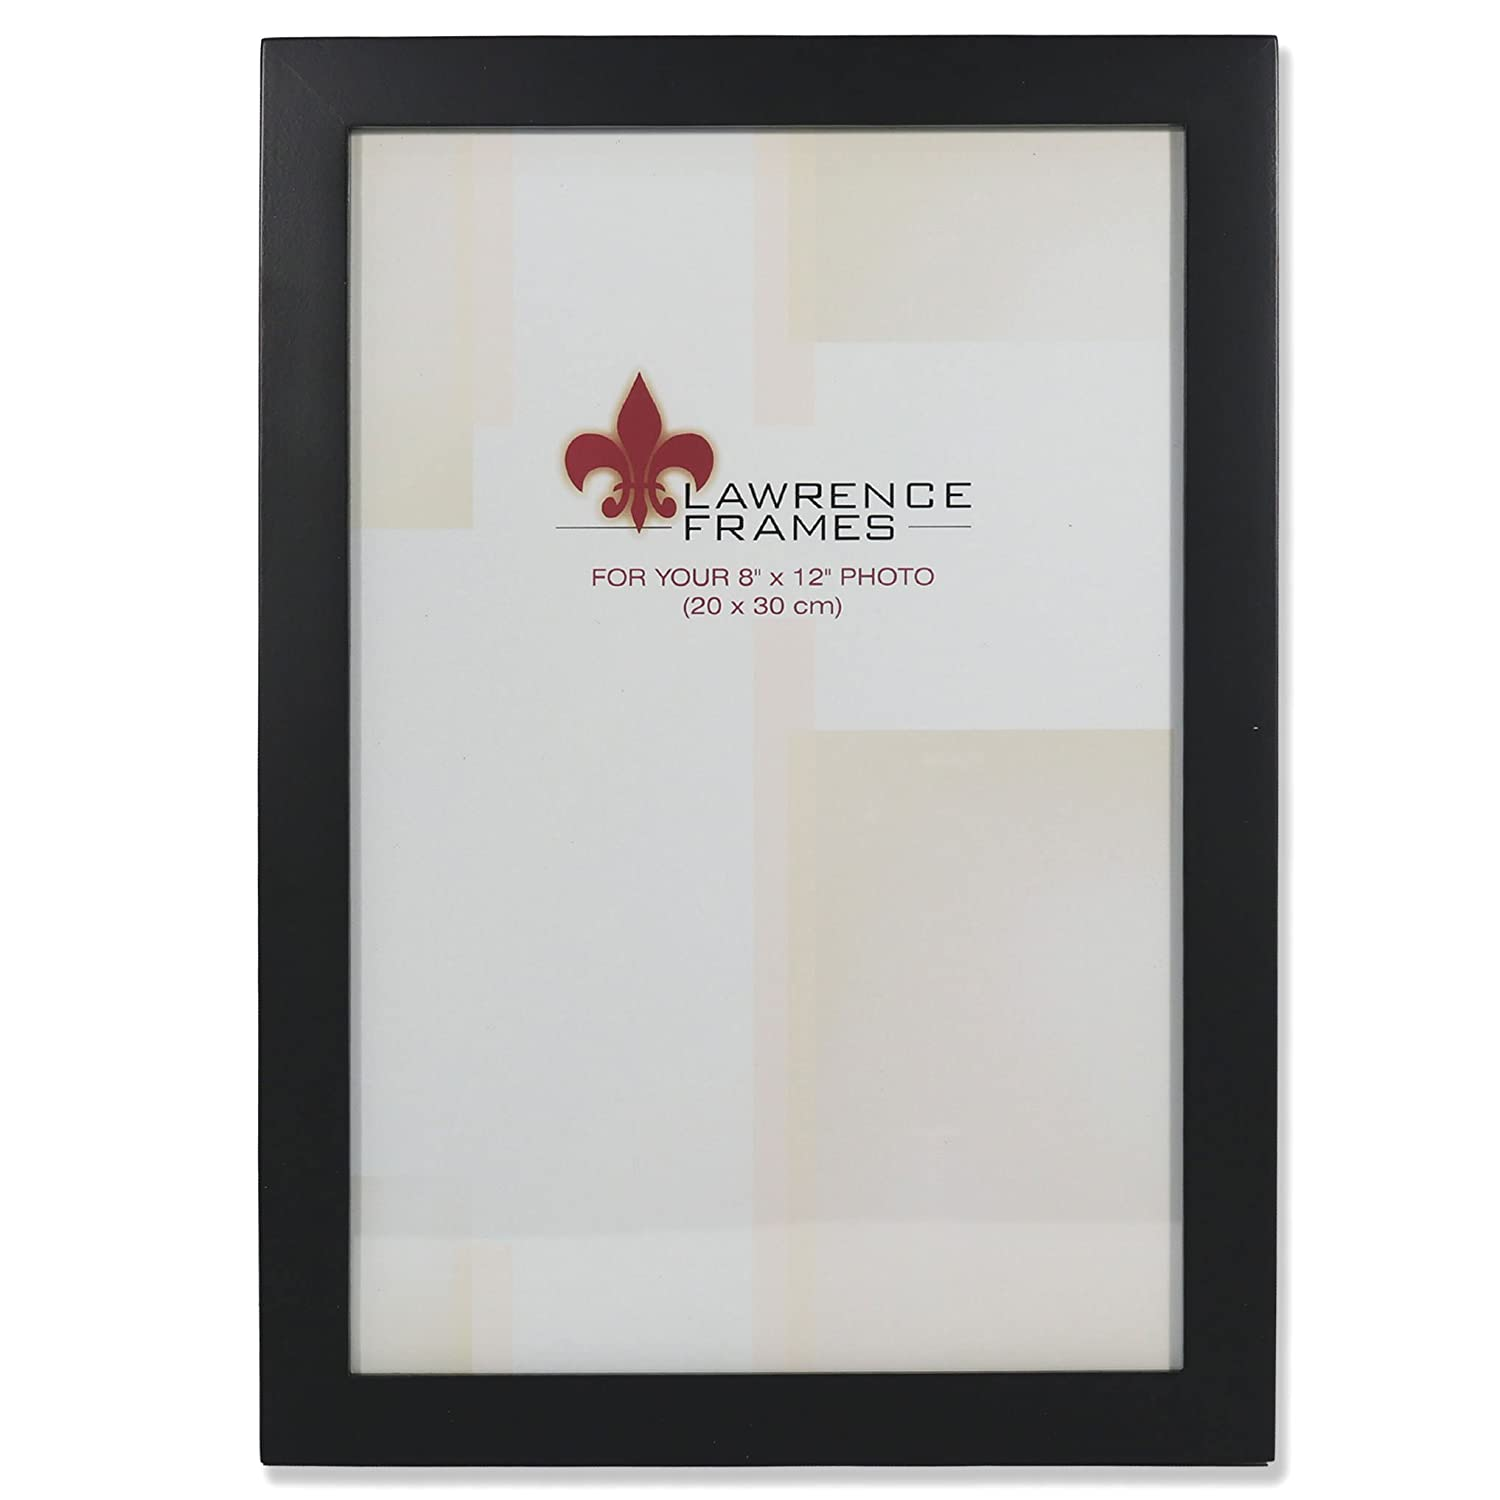 Amazon.com - Lawrence Frames Black Wood 8 by 12 Picture Frame ...